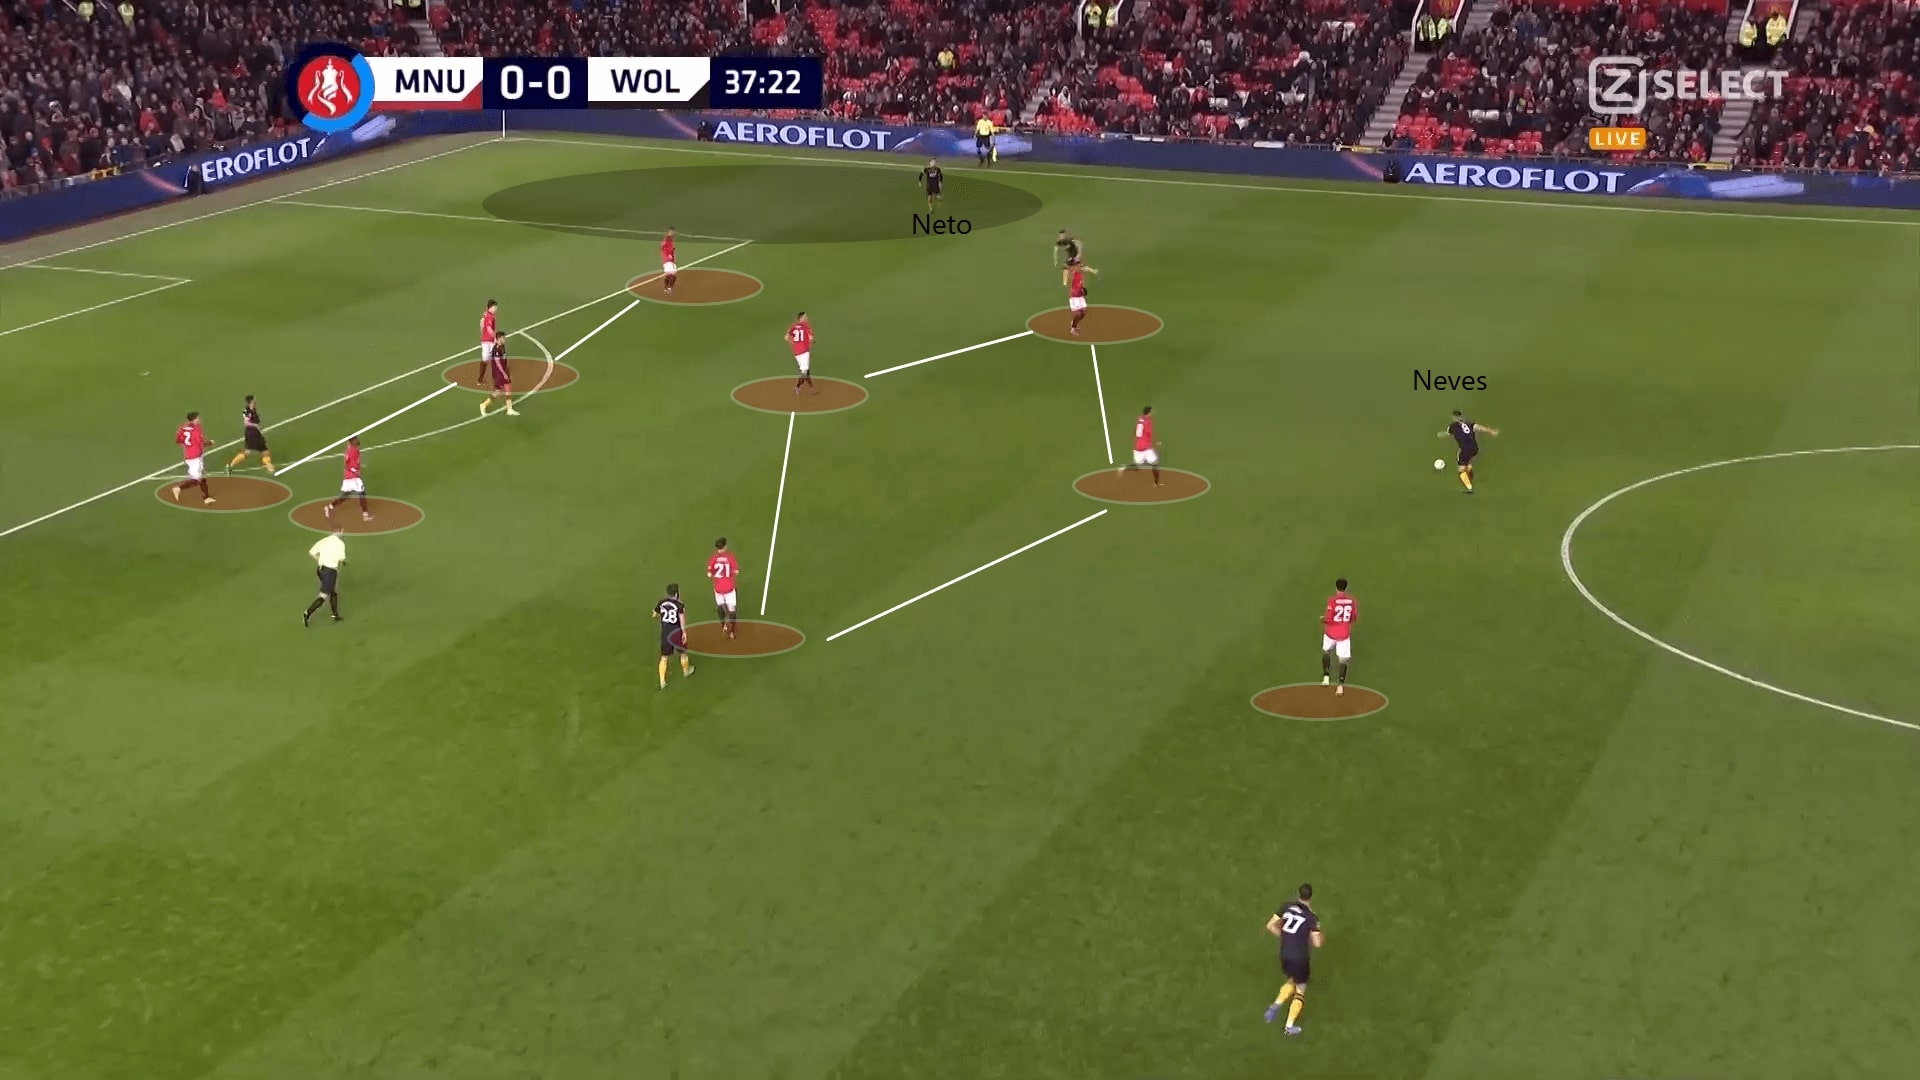 FA Cup 2019/20: Manchester United vs Wolves - tactical analysis